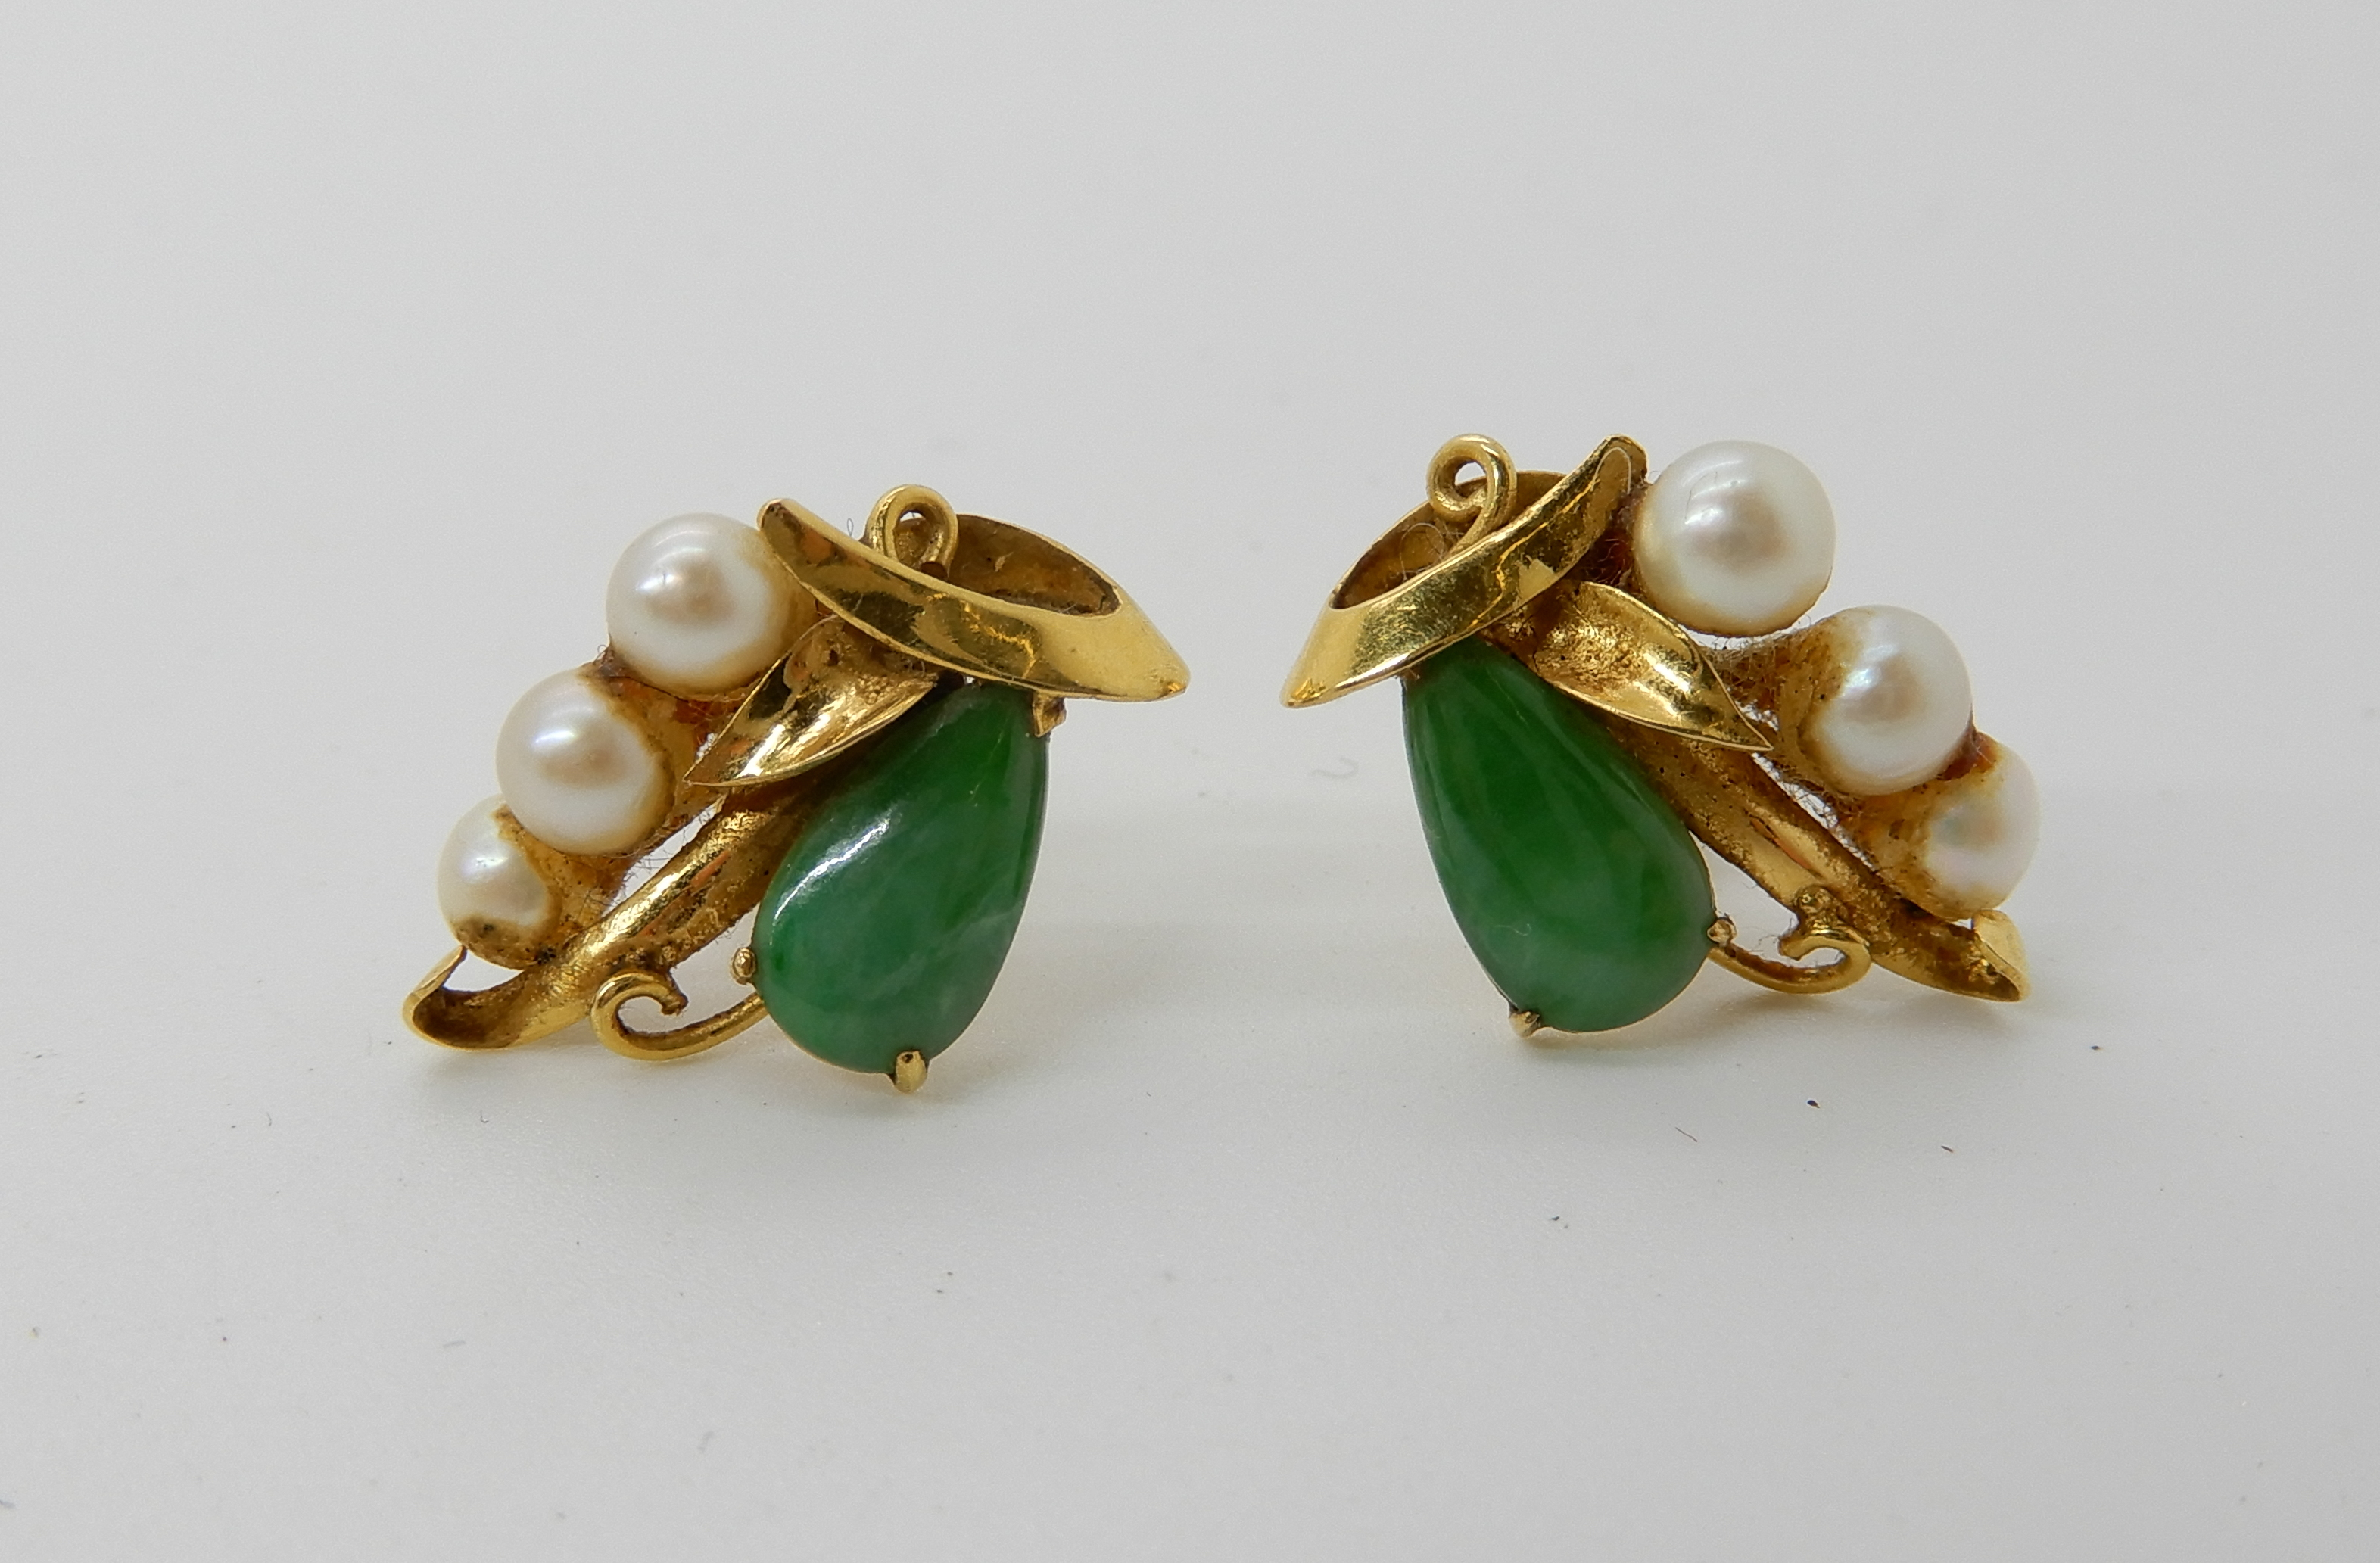 Lot 47 - A pair of bright yellow metal pearl and Chinese green hardstone screw post earrings, length 1.8cm